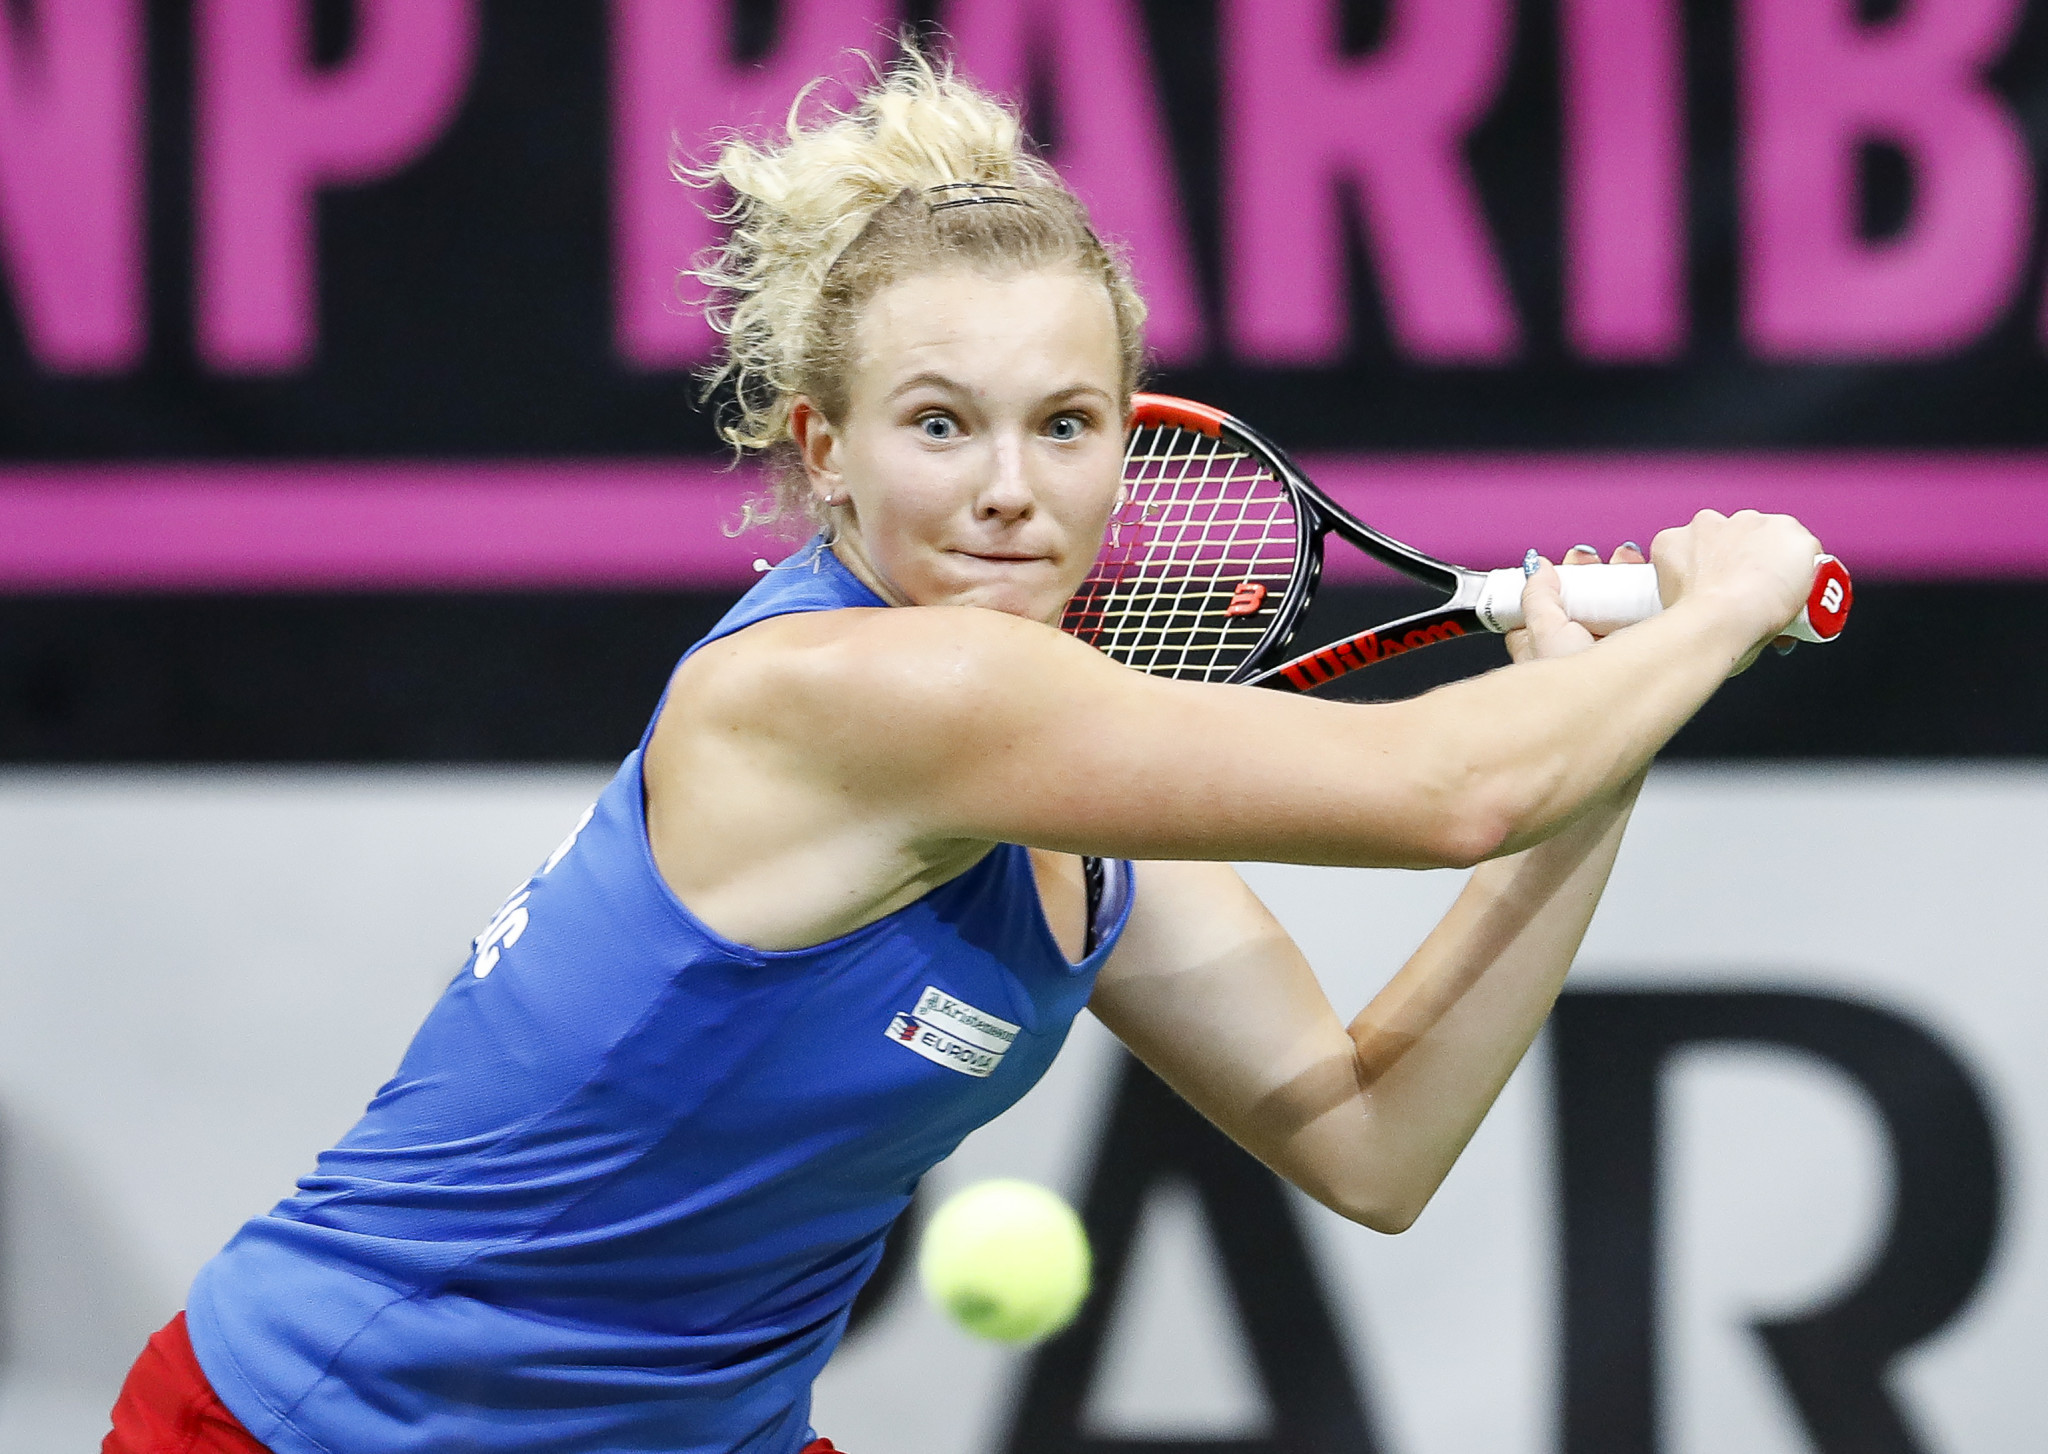 Katerina Siniakova stormed to two victories in the Fed Cup final to help the Czech Republic win the title in front of home fans ©Getty Images